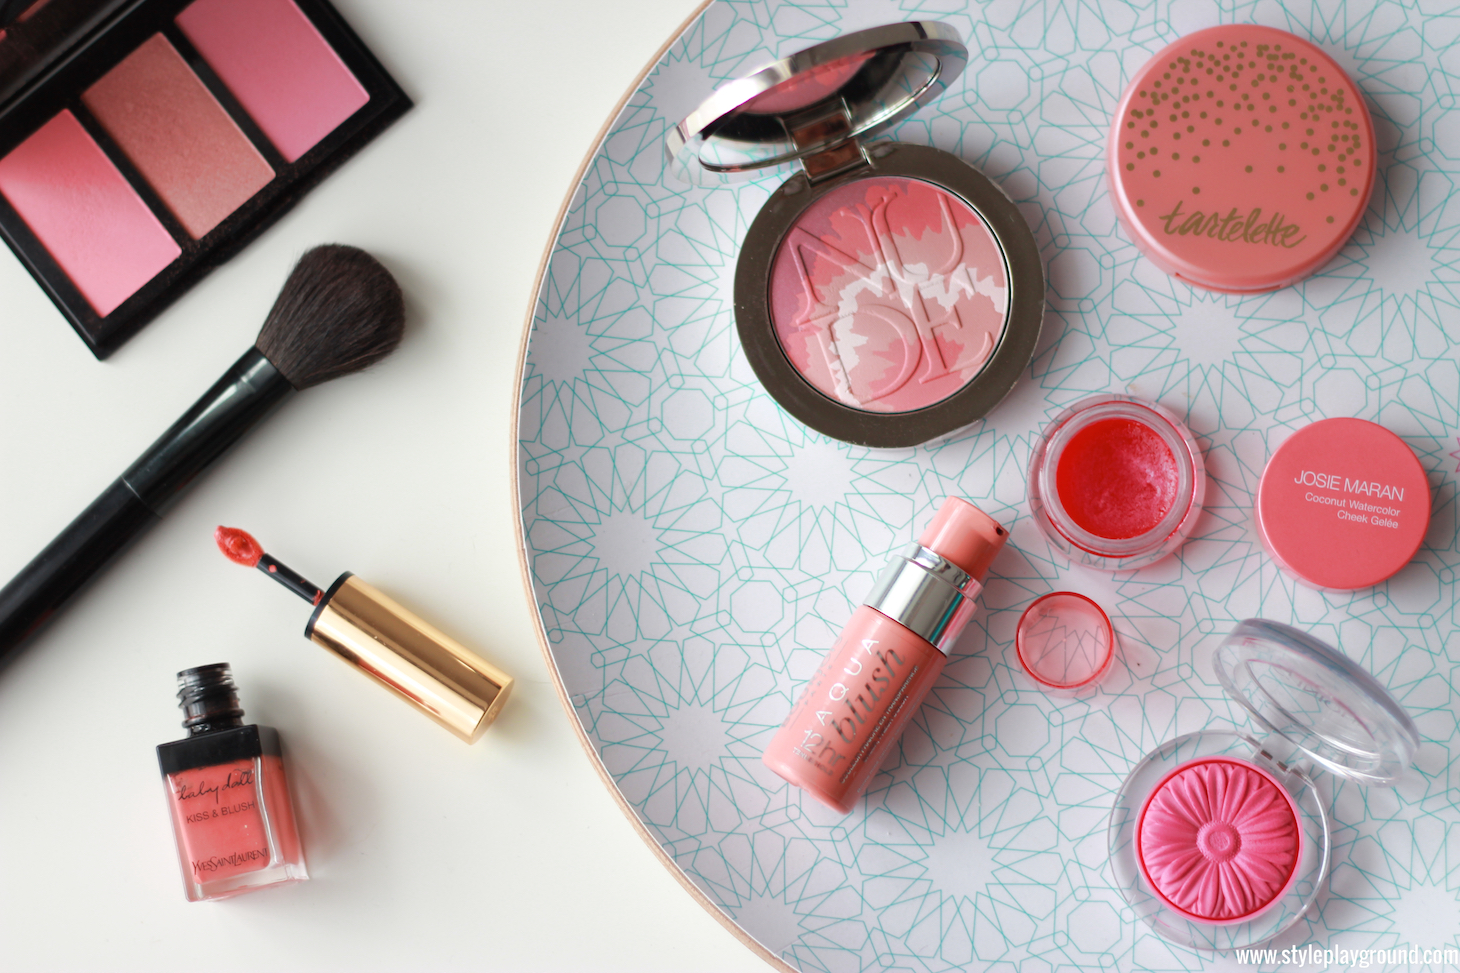 My favorite blushes for spring